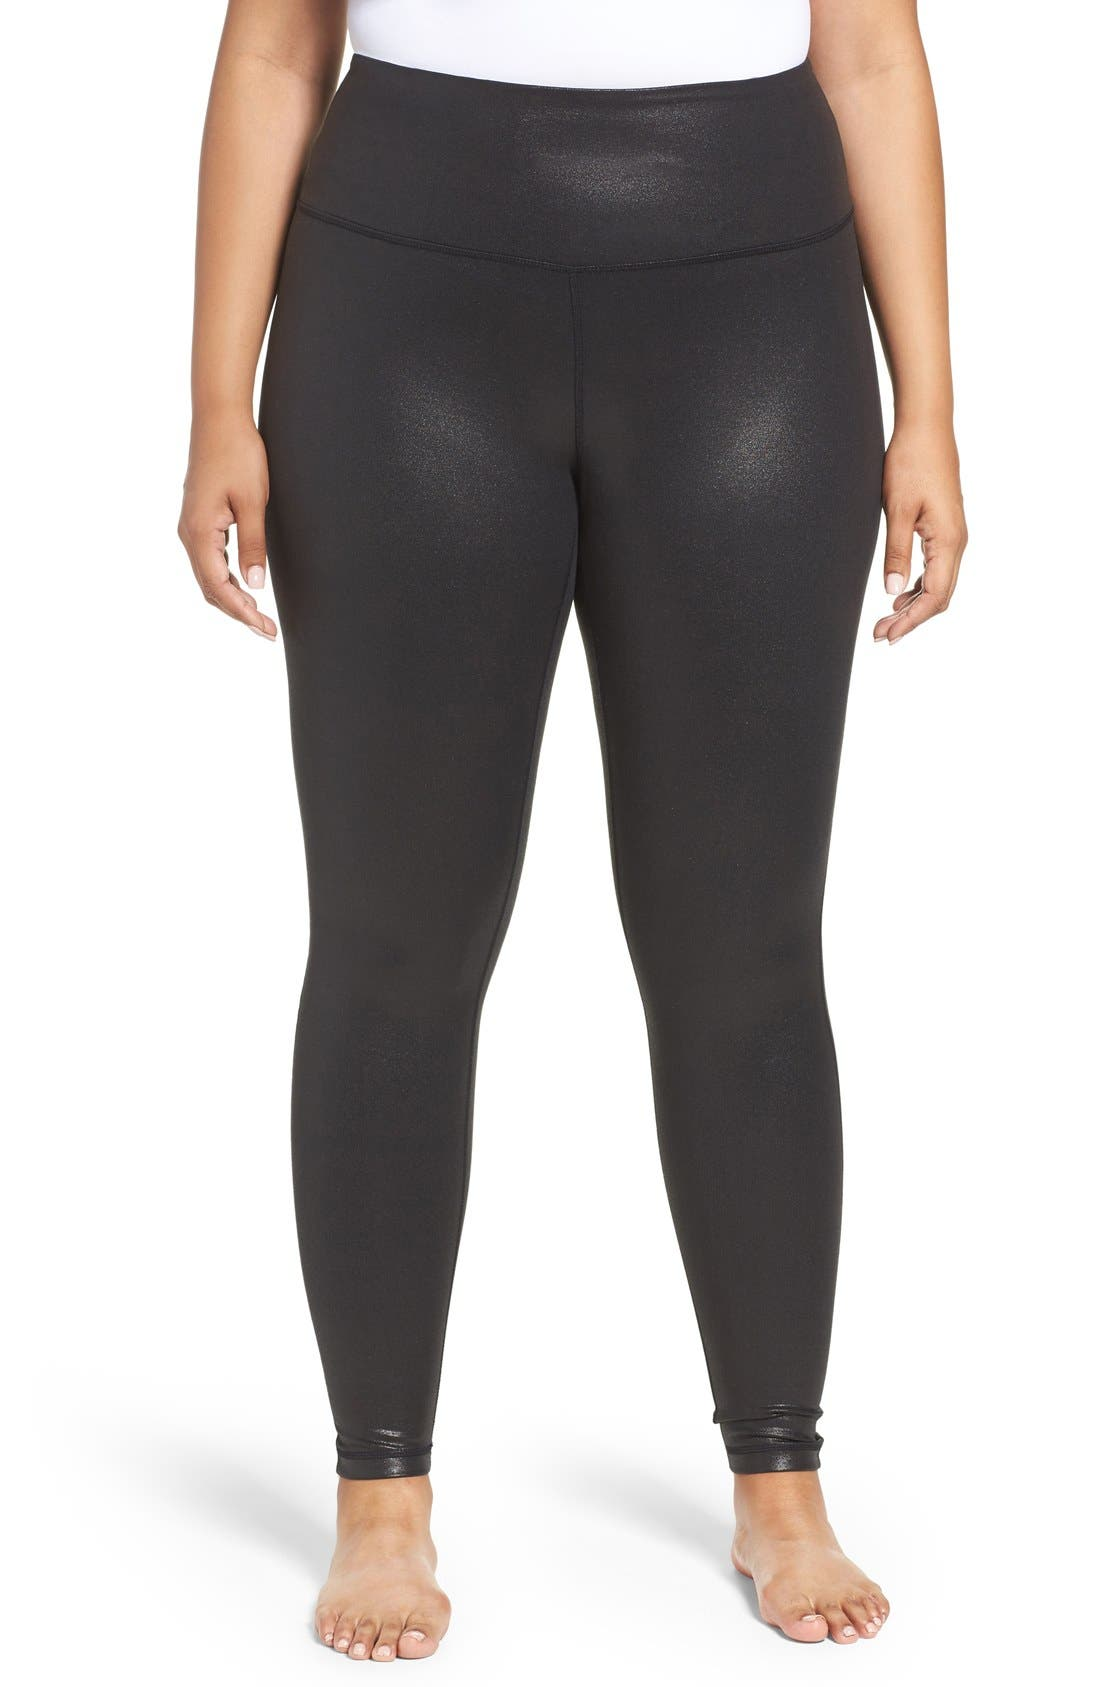 Alternate Image 1 Selected - Zella Live-In High Waist Leggings (Plus Size)